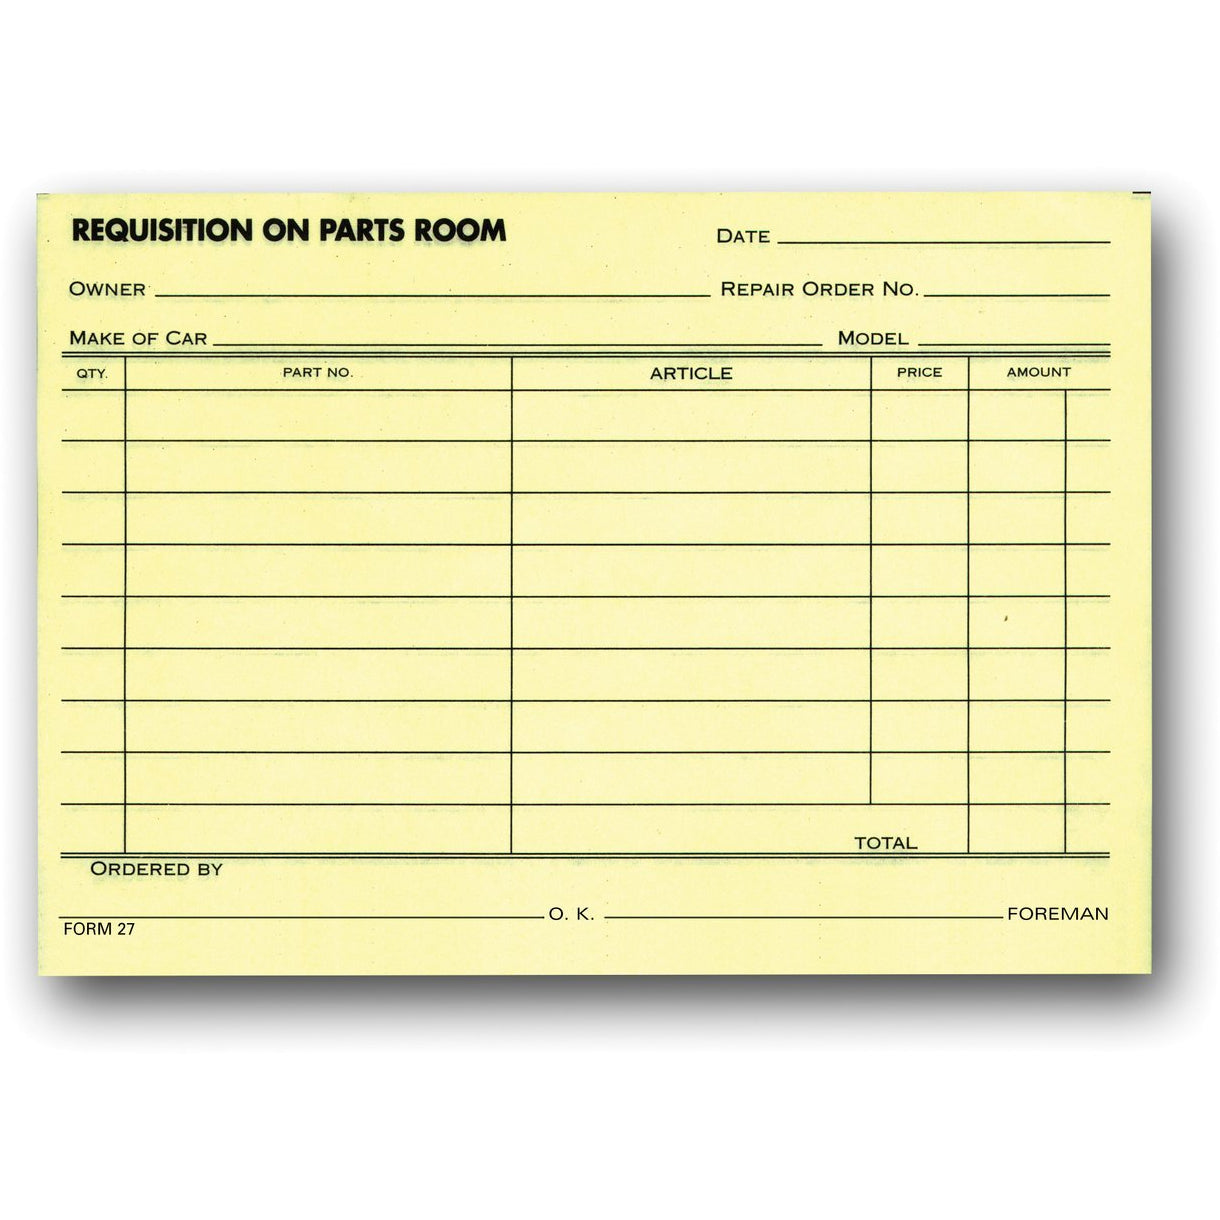 PARTS REQUISITION FORMS #617